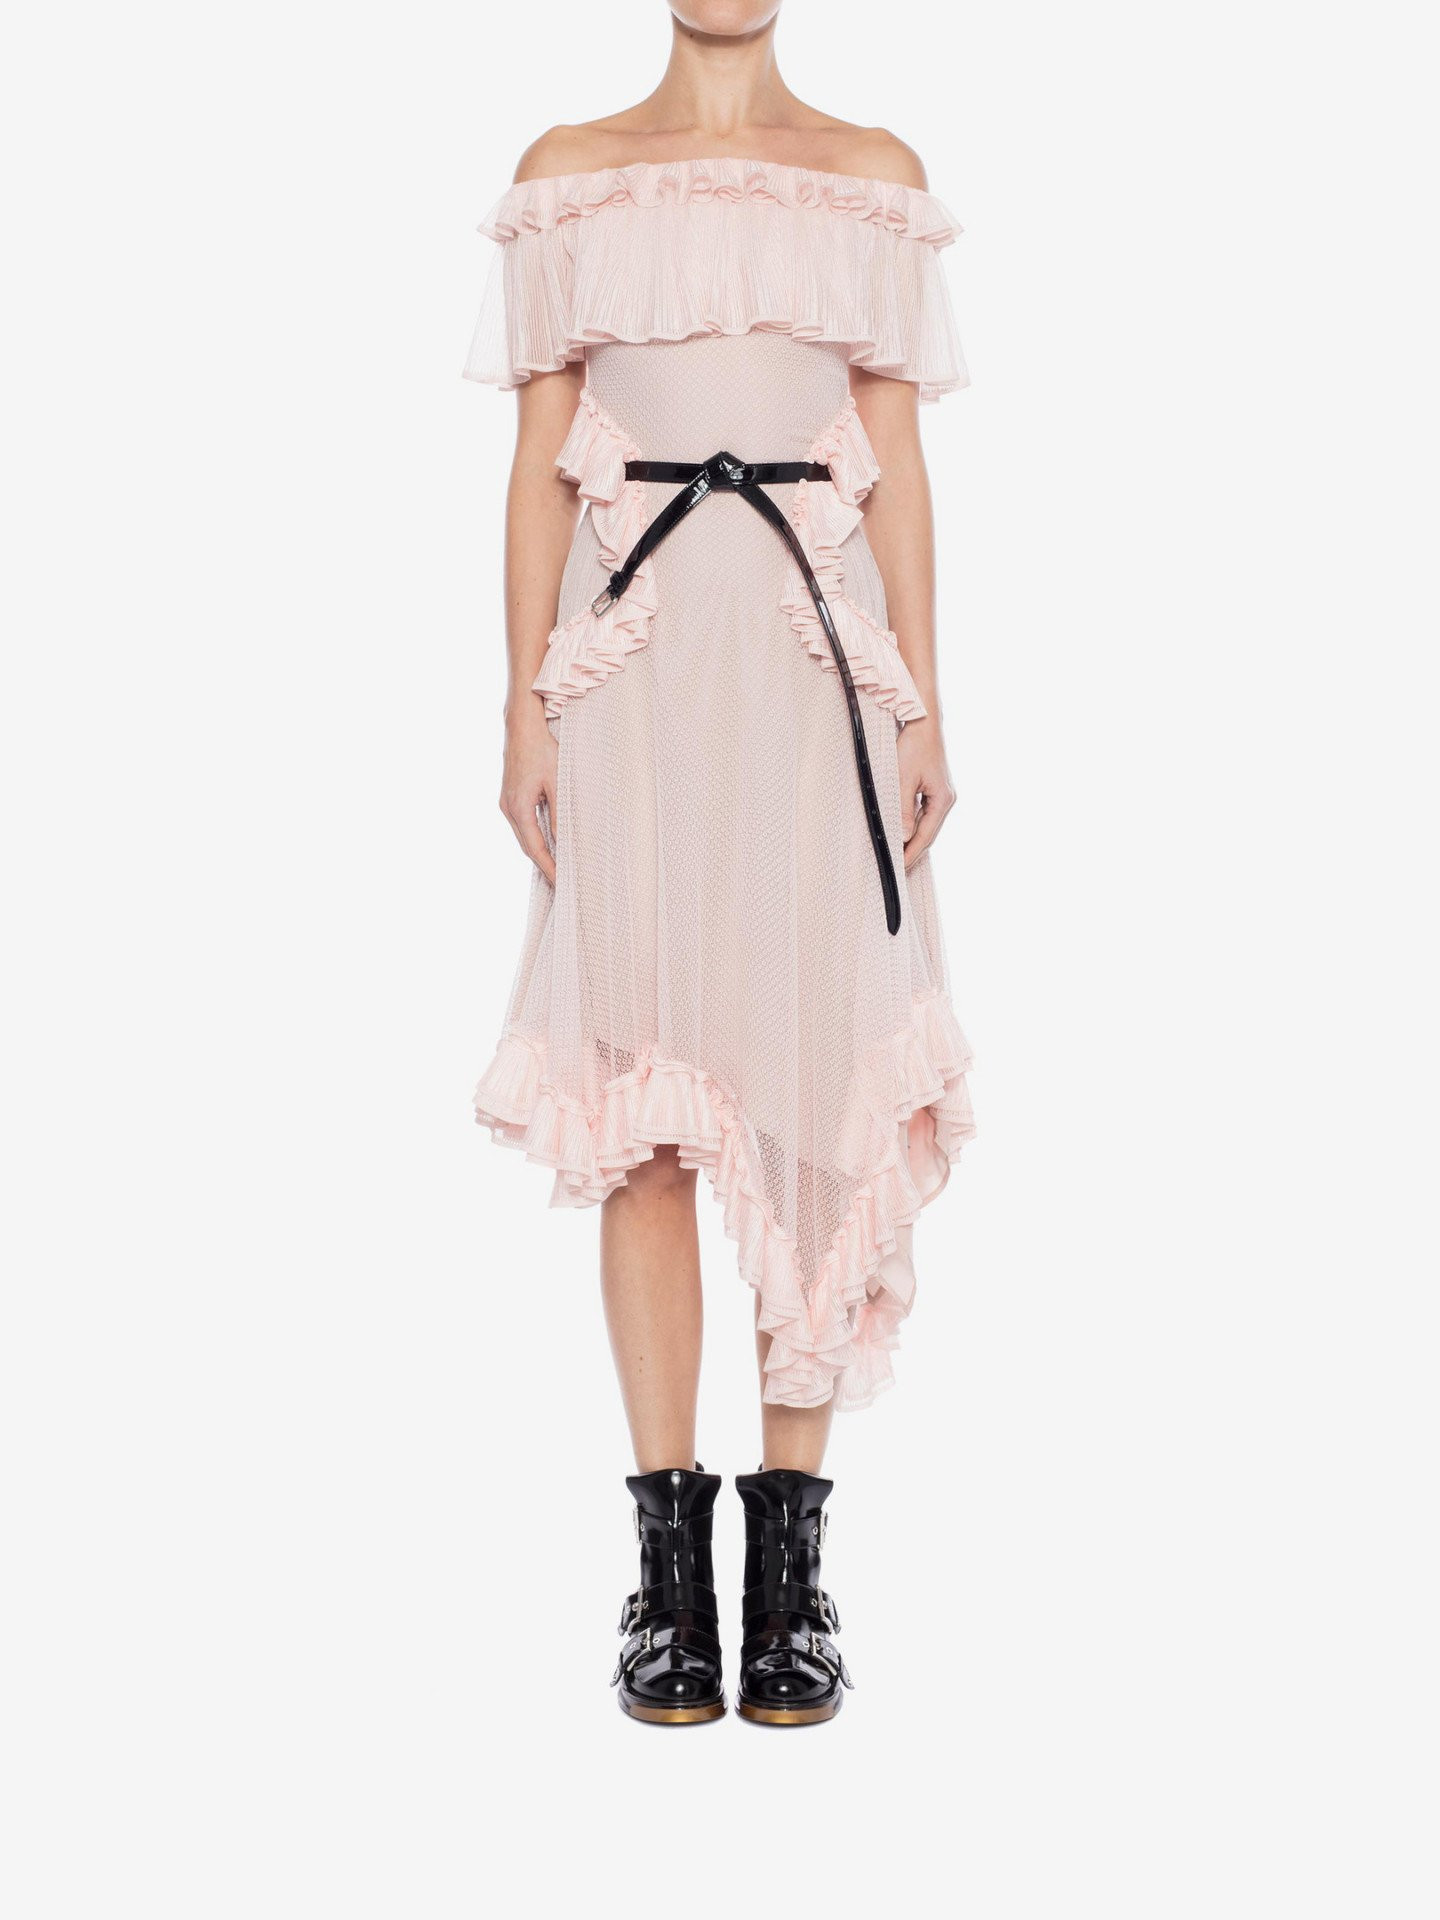 ALEXANDER MCQUEEN Off The Shoulder Lace Knit Ruffle Mini Rose Pink Dress